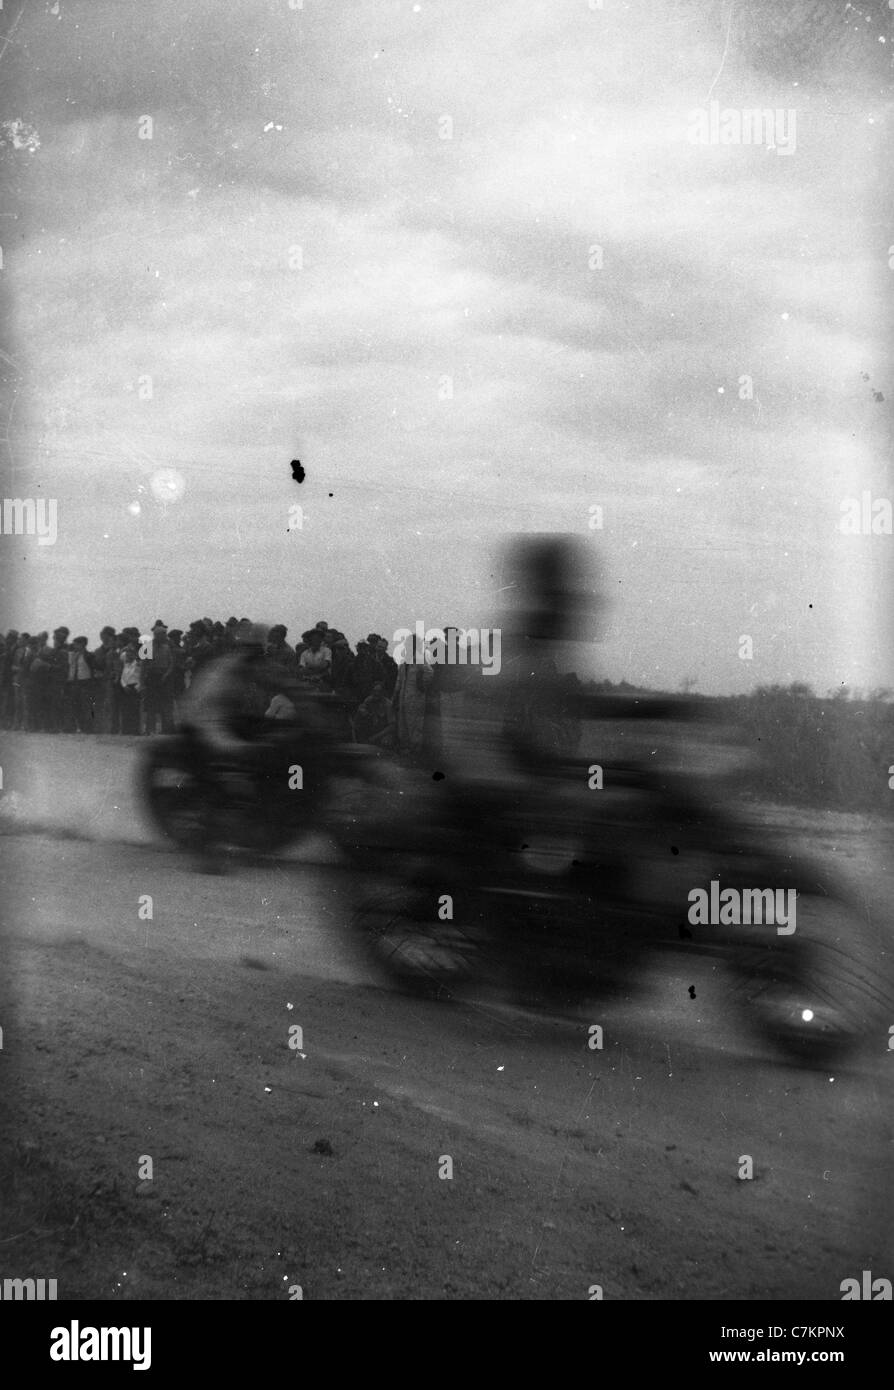 1930s motorcycle race Americana blurred passing speed crowd watching racing fast - Stock Image